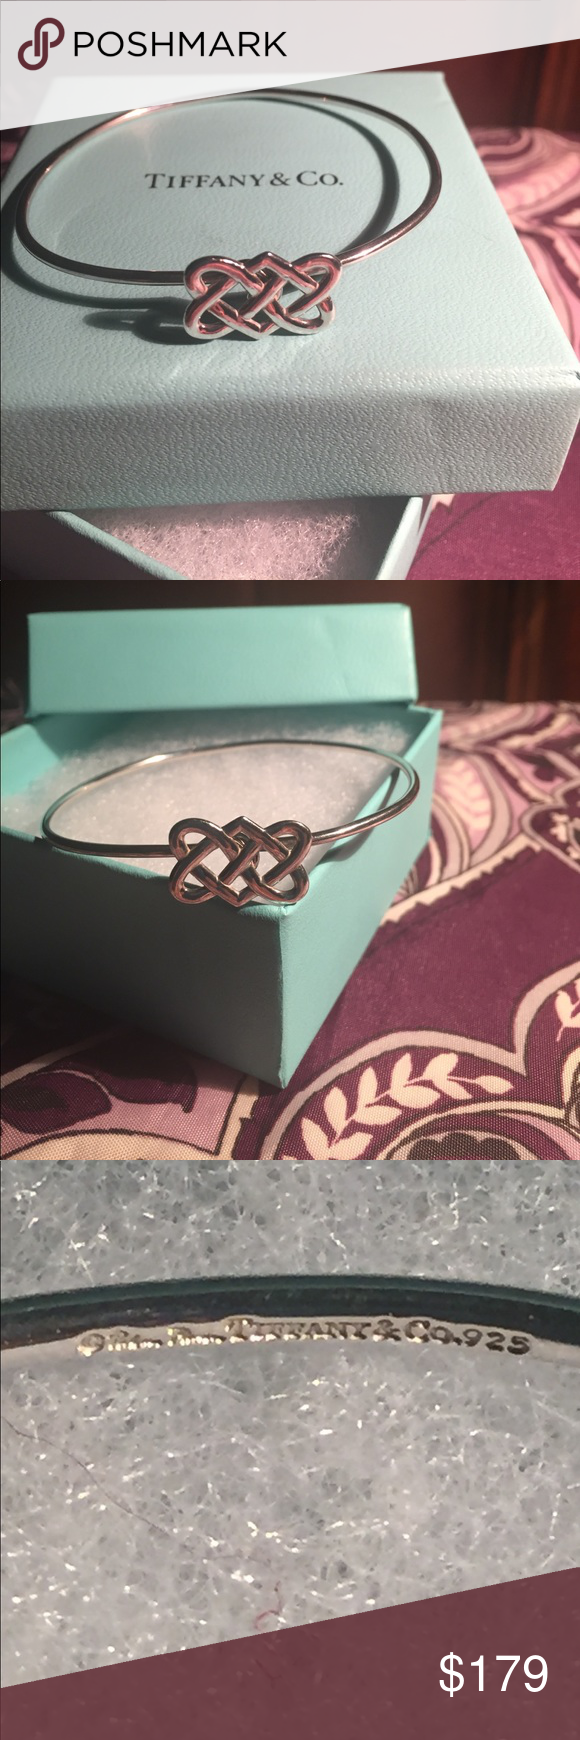 7245ab4b9 Tiffany & Co Trinity Love Knot Bangle Bracelet Paloma Picasso Tiffany & Co  Sterling Celtic Trinity Love Knot Bangle Bracelet. Beautiful and unique!